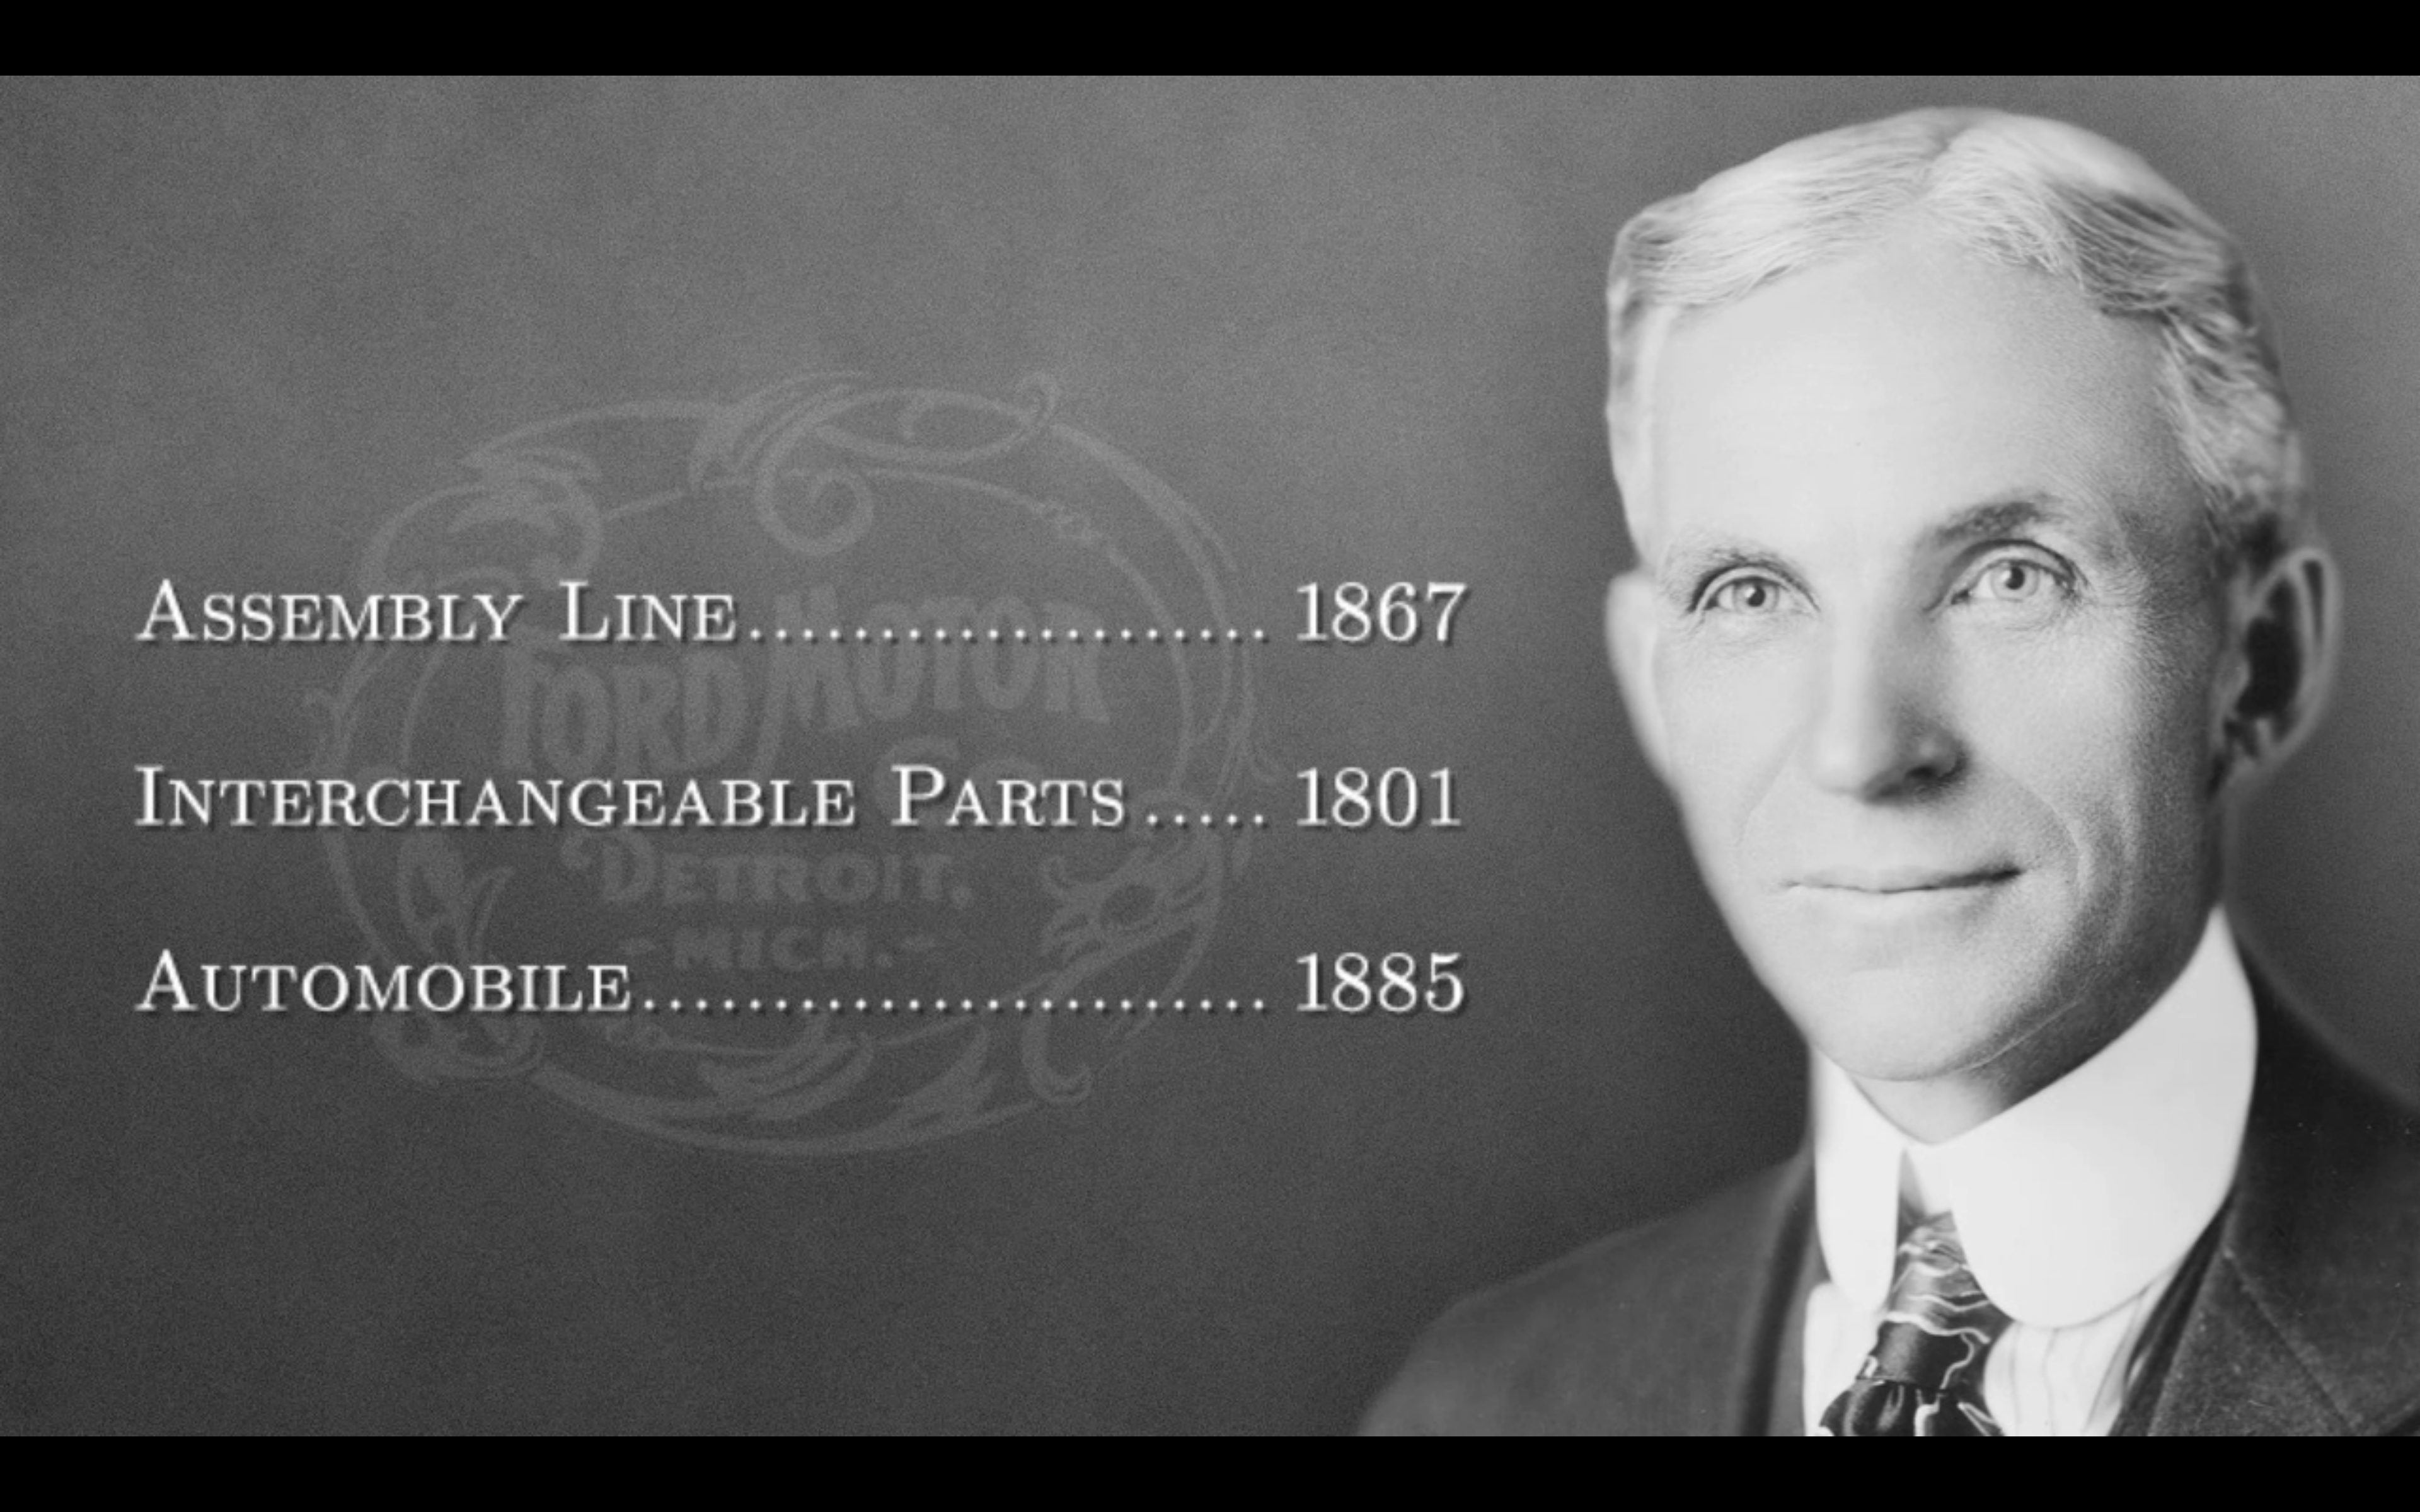 """Henry Ford and The Ford Motor Company didn't invent the assembly line,"